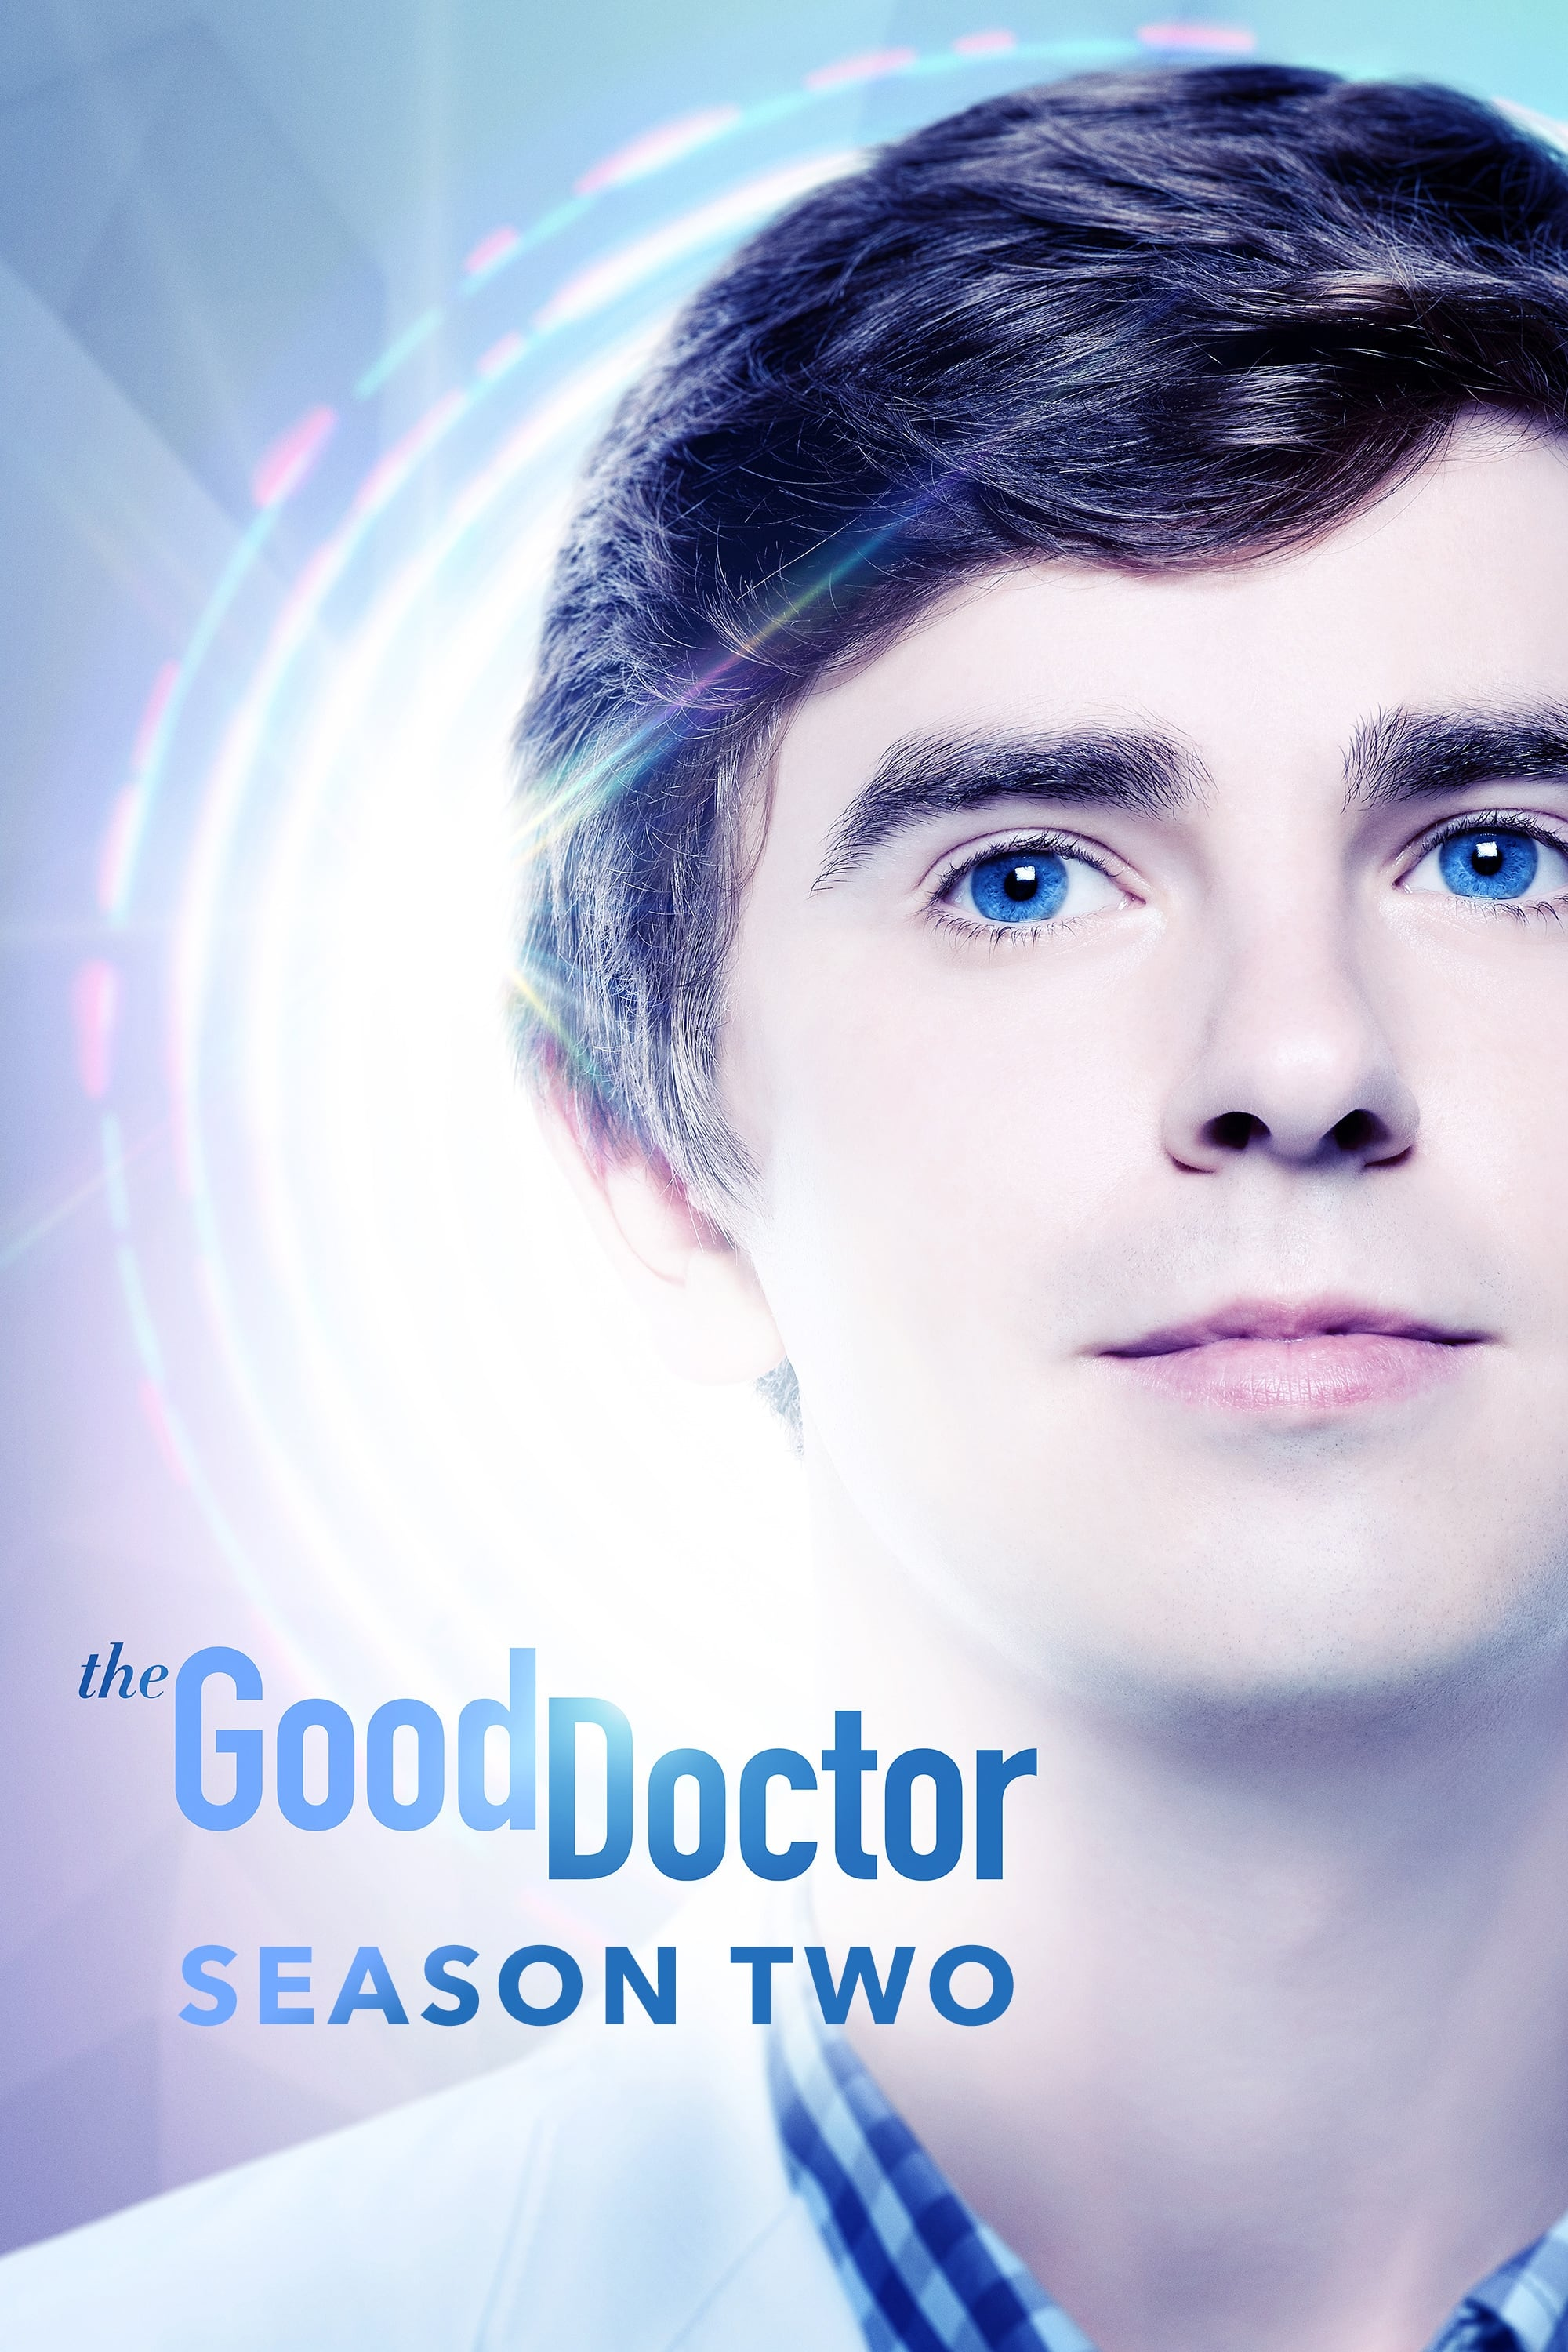 The Good Doctor Season 2 Episode 7 Added